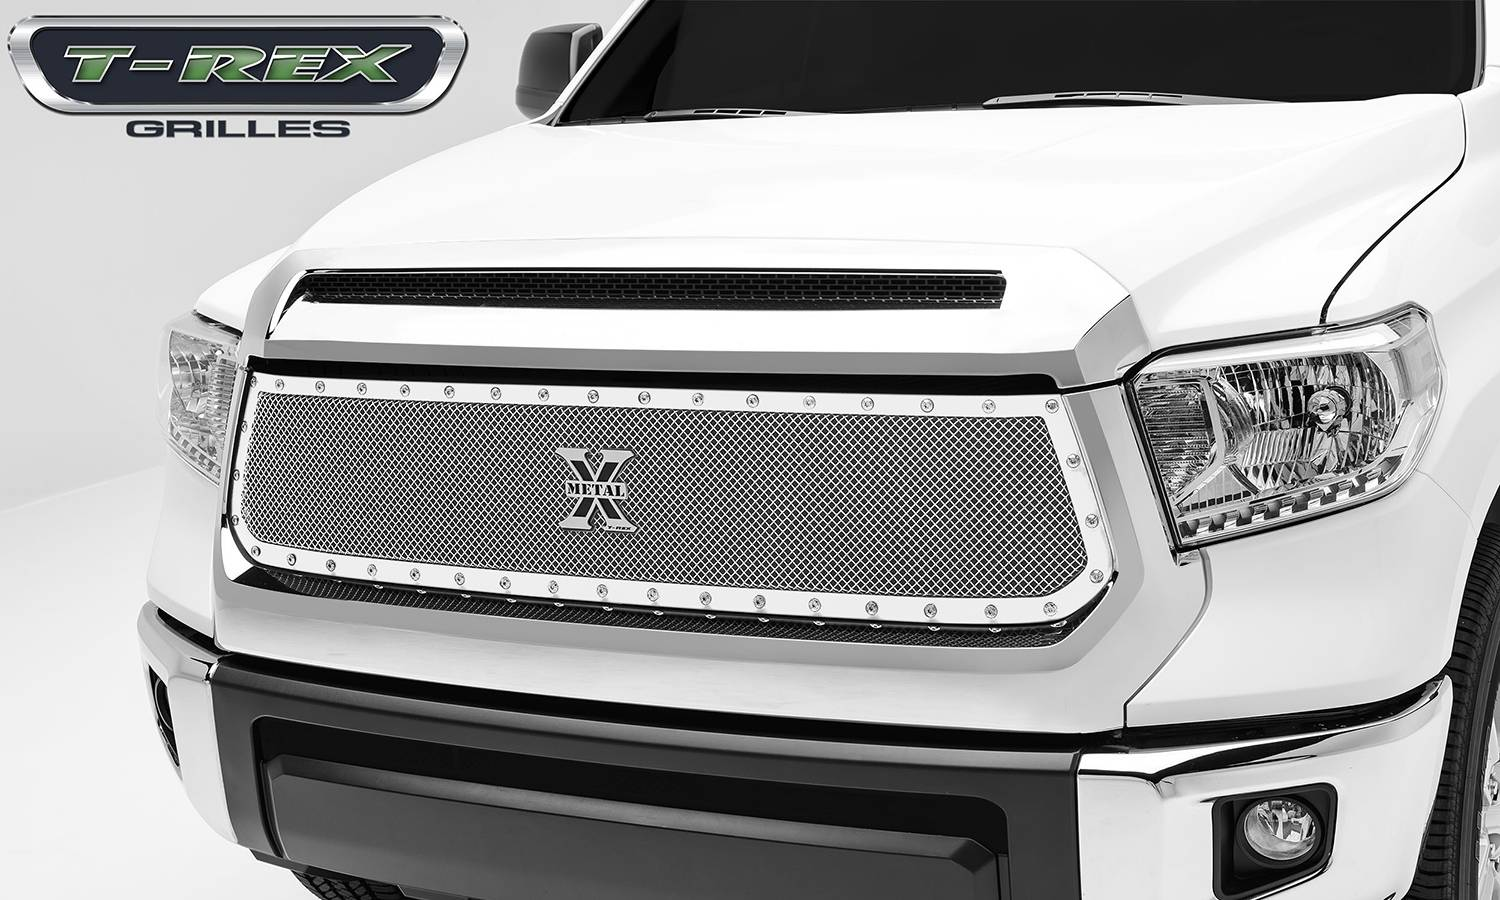 T-REX Grilles - 2014-2017 Tundra X-Metal Grille, Polished, 1 Pc, Replacement, Chrome Studs - PN #6719640